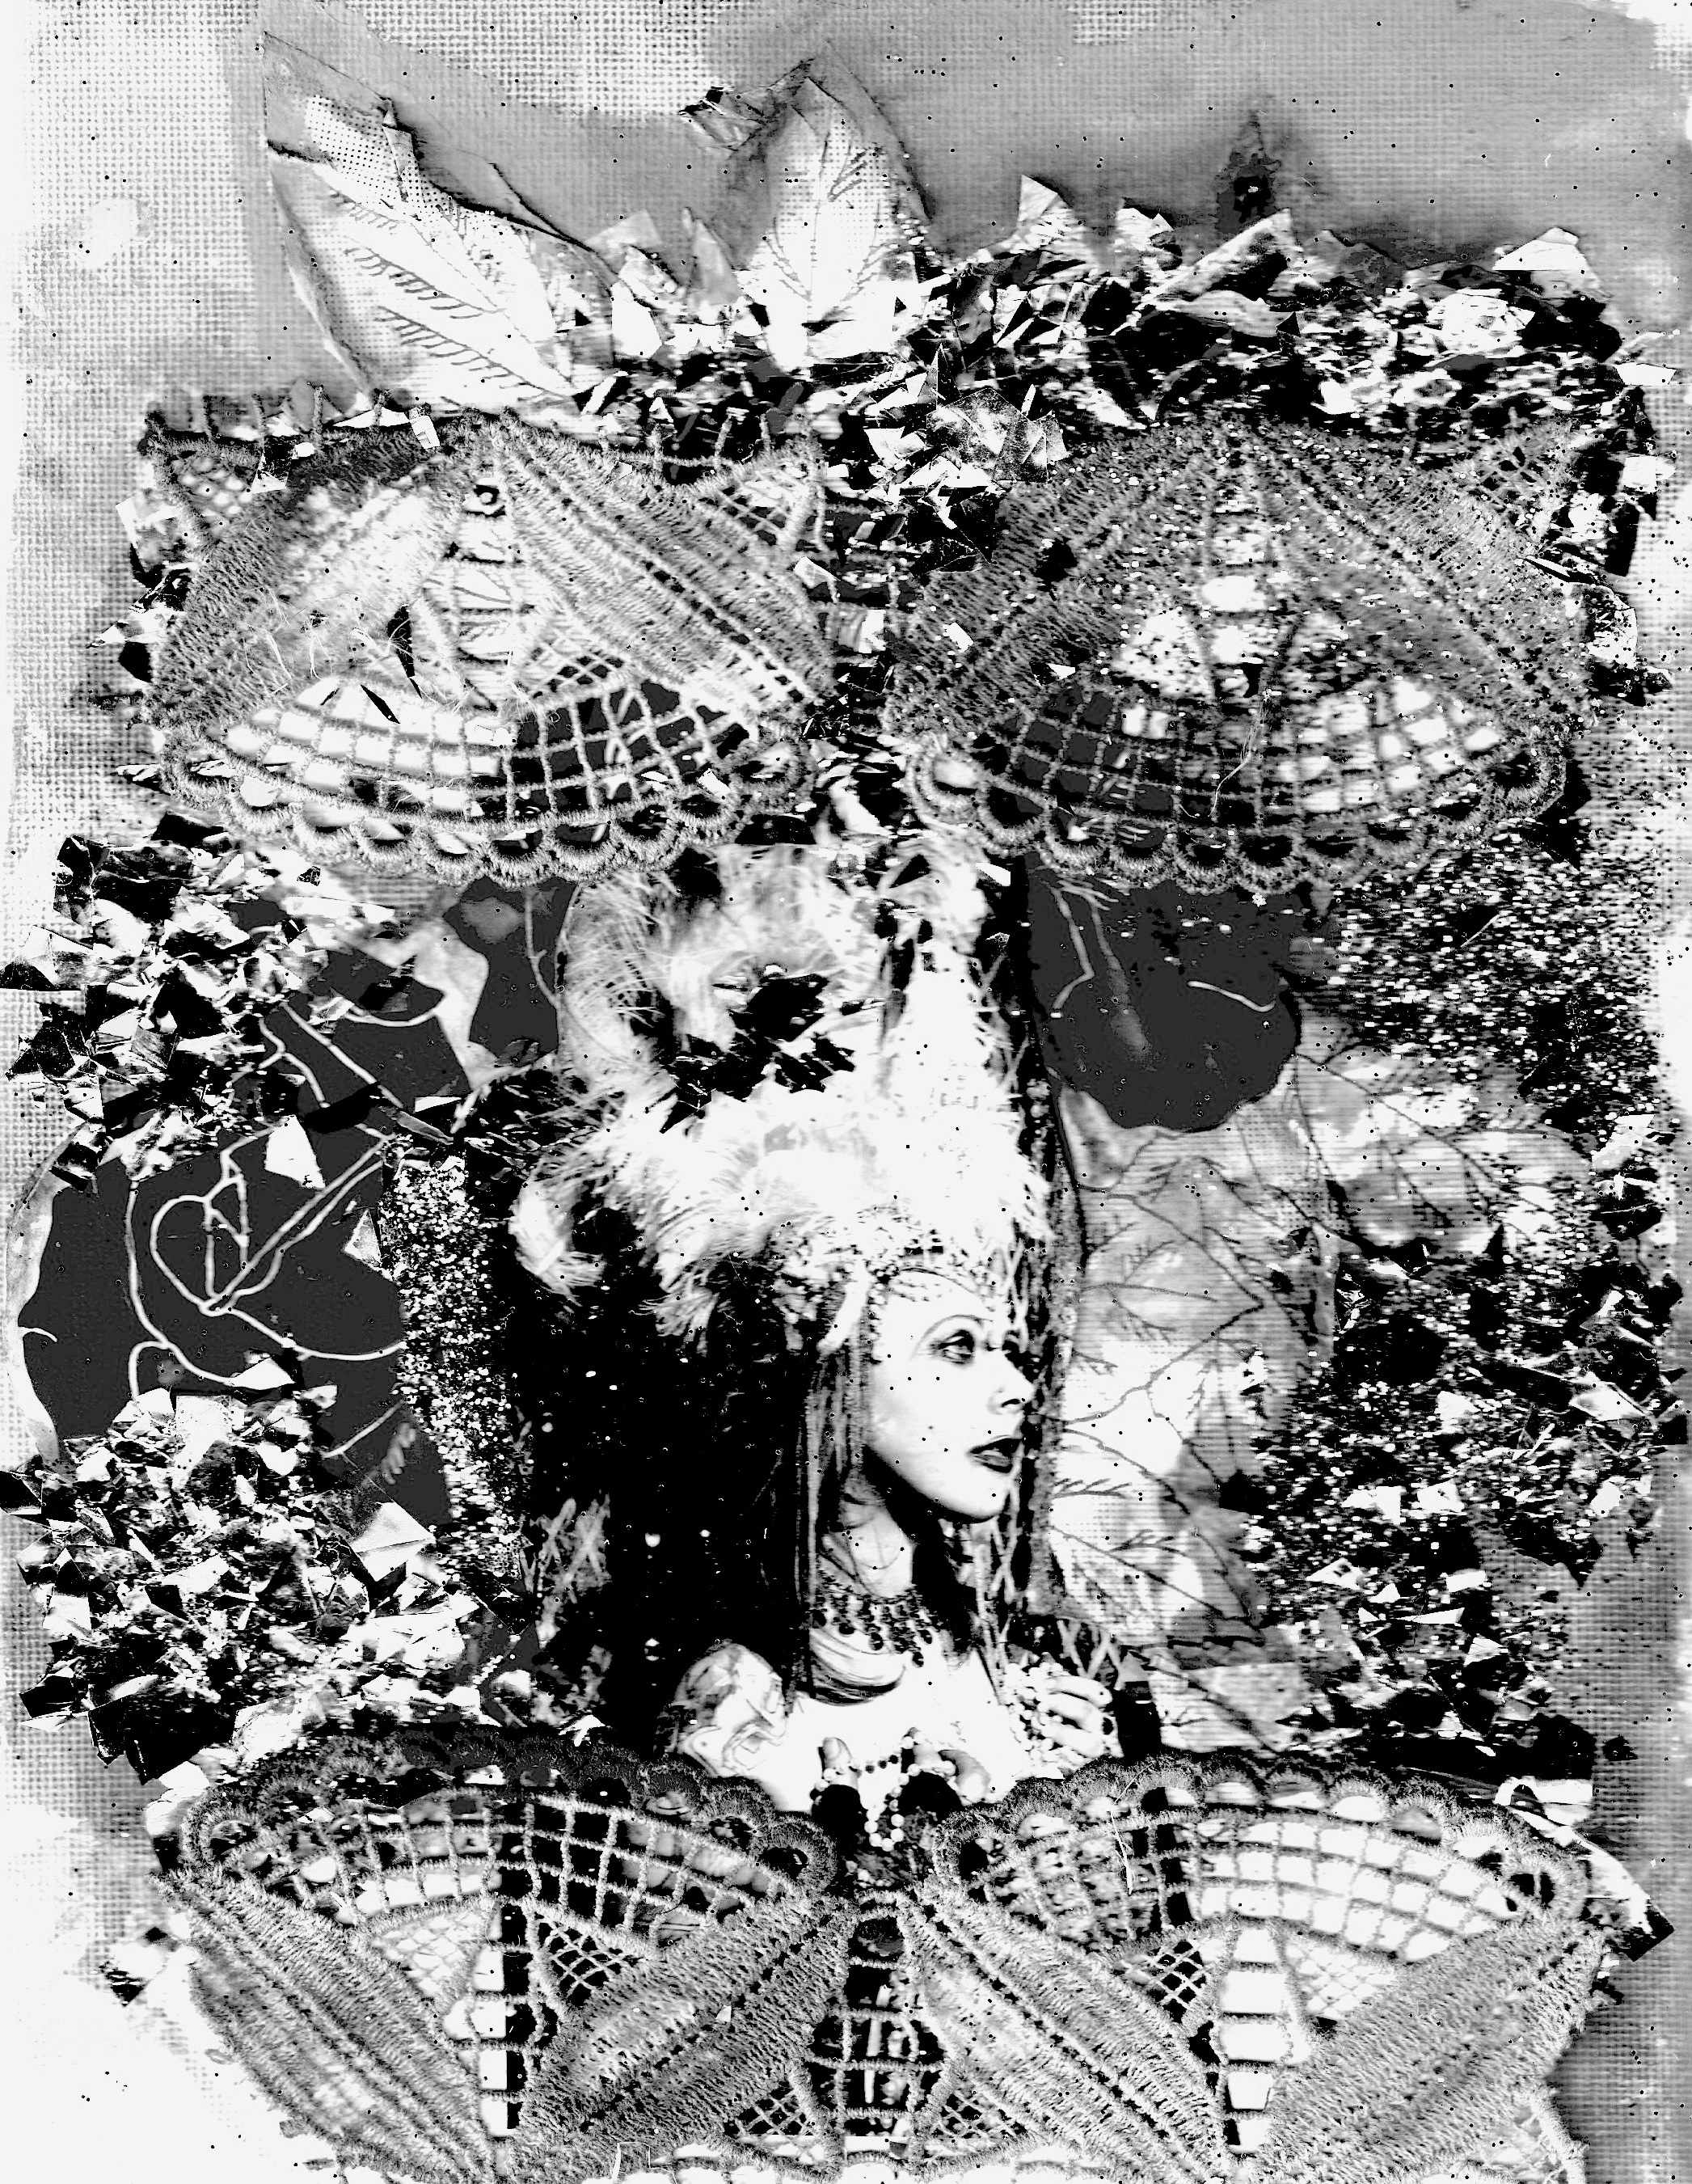 Self portrait@ Stardust and Antique lace collage